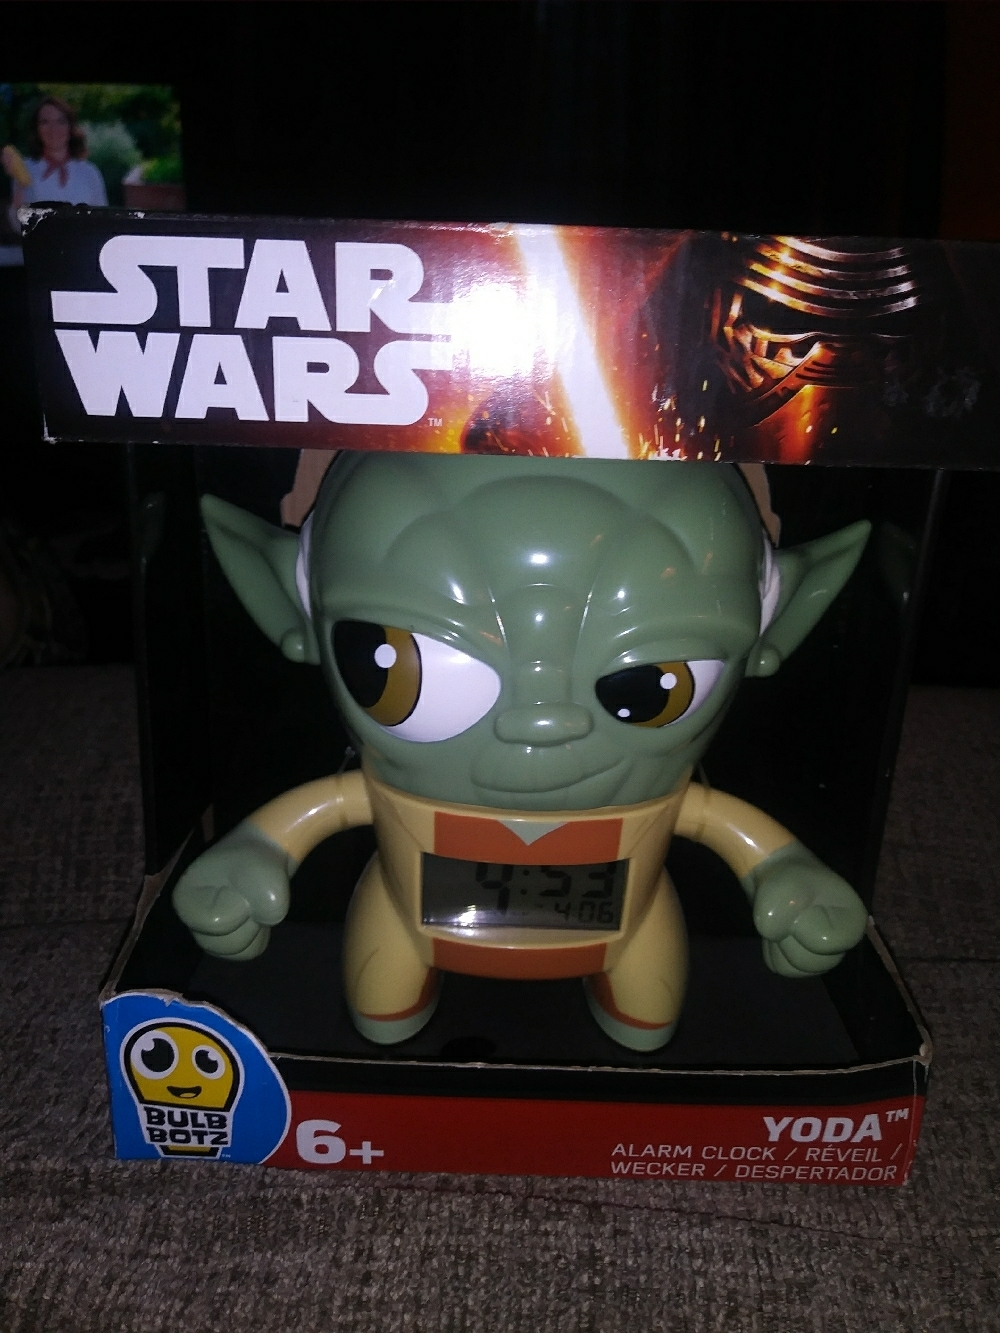 Primary image for star wars bulb botz yoda alarm clock clock